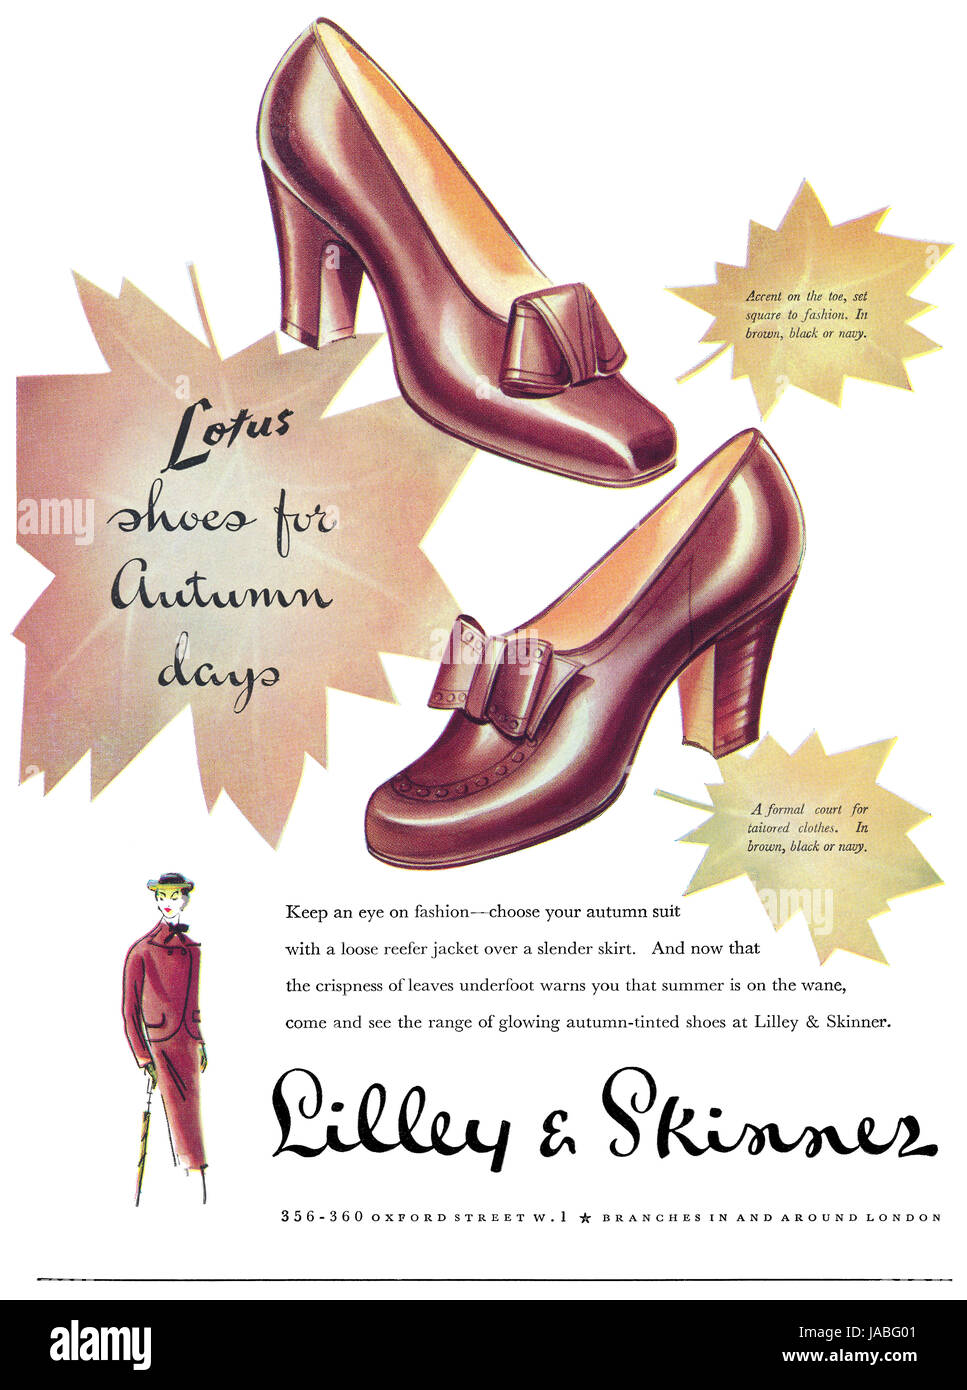 1950 British advertisement for Lilley & Skinner shoe stores. - Stock Image